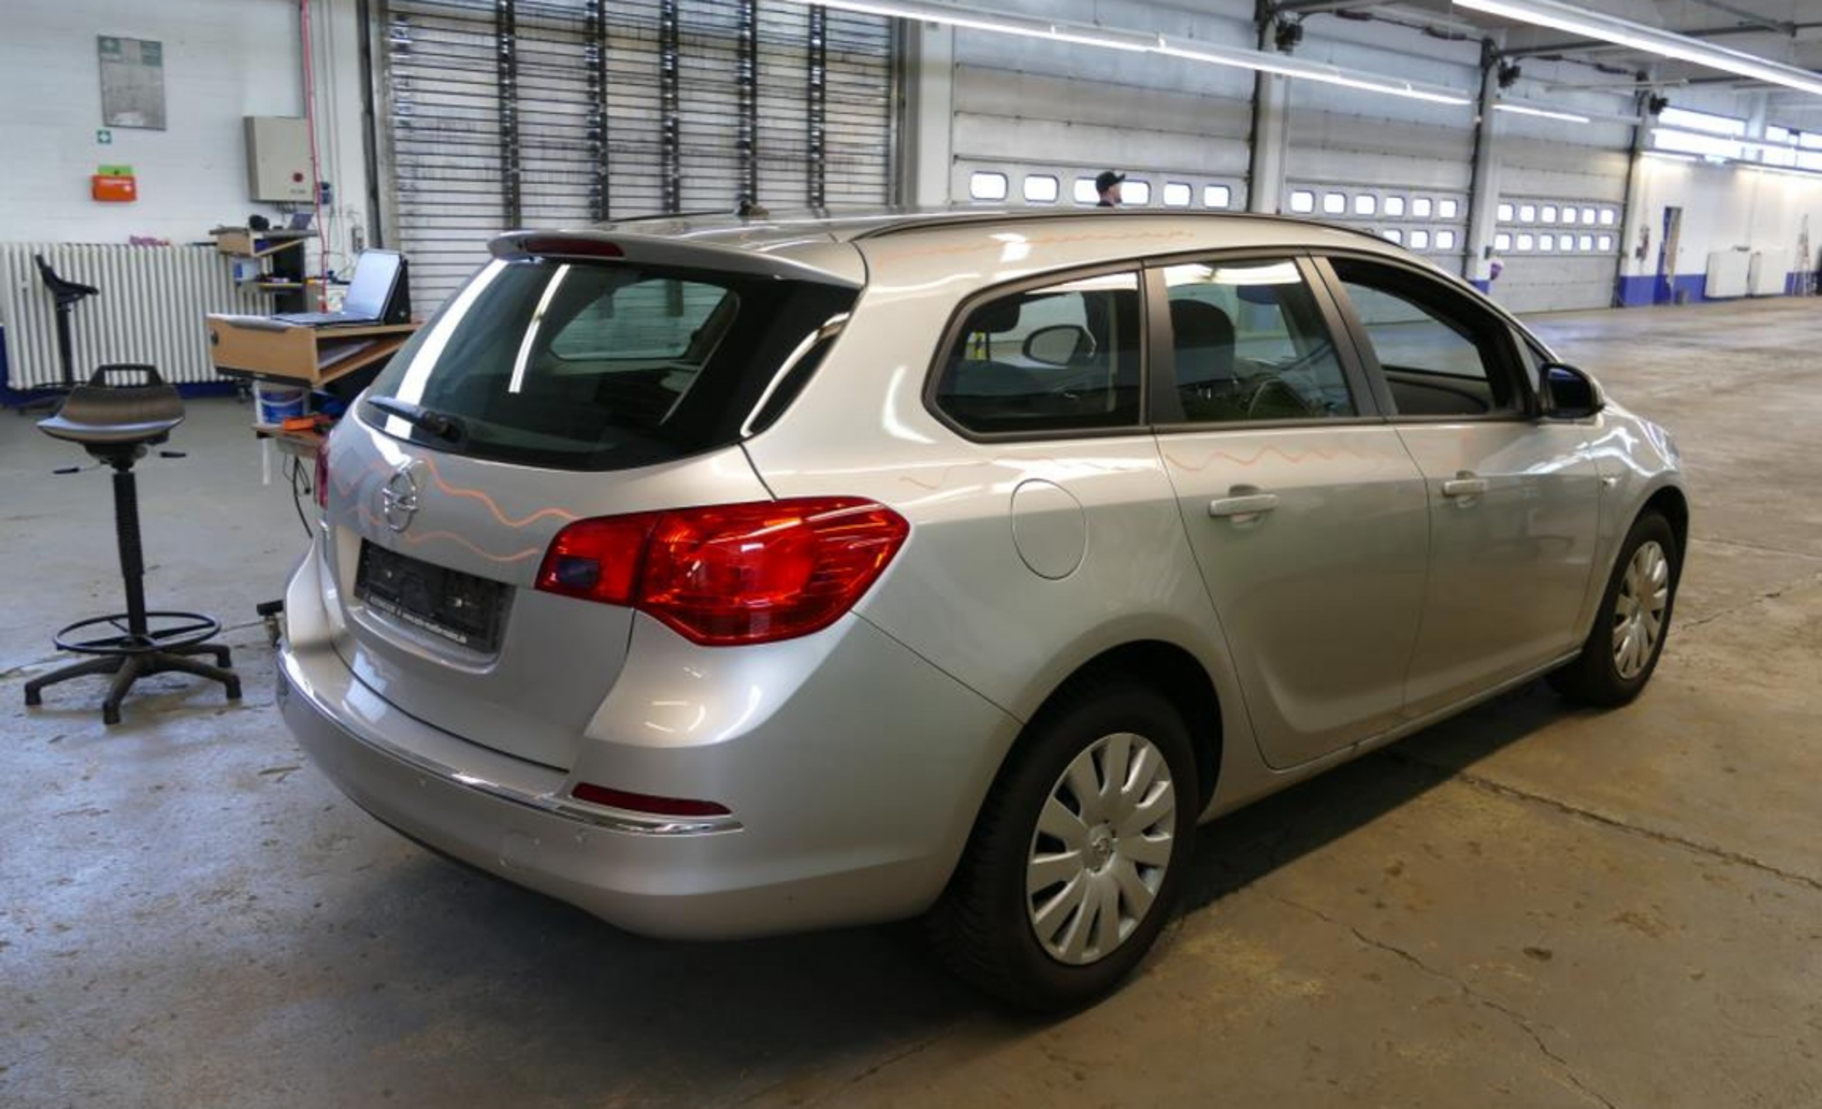 Opel Astra 1.6 Sports Tourer Edition (529836) detail2